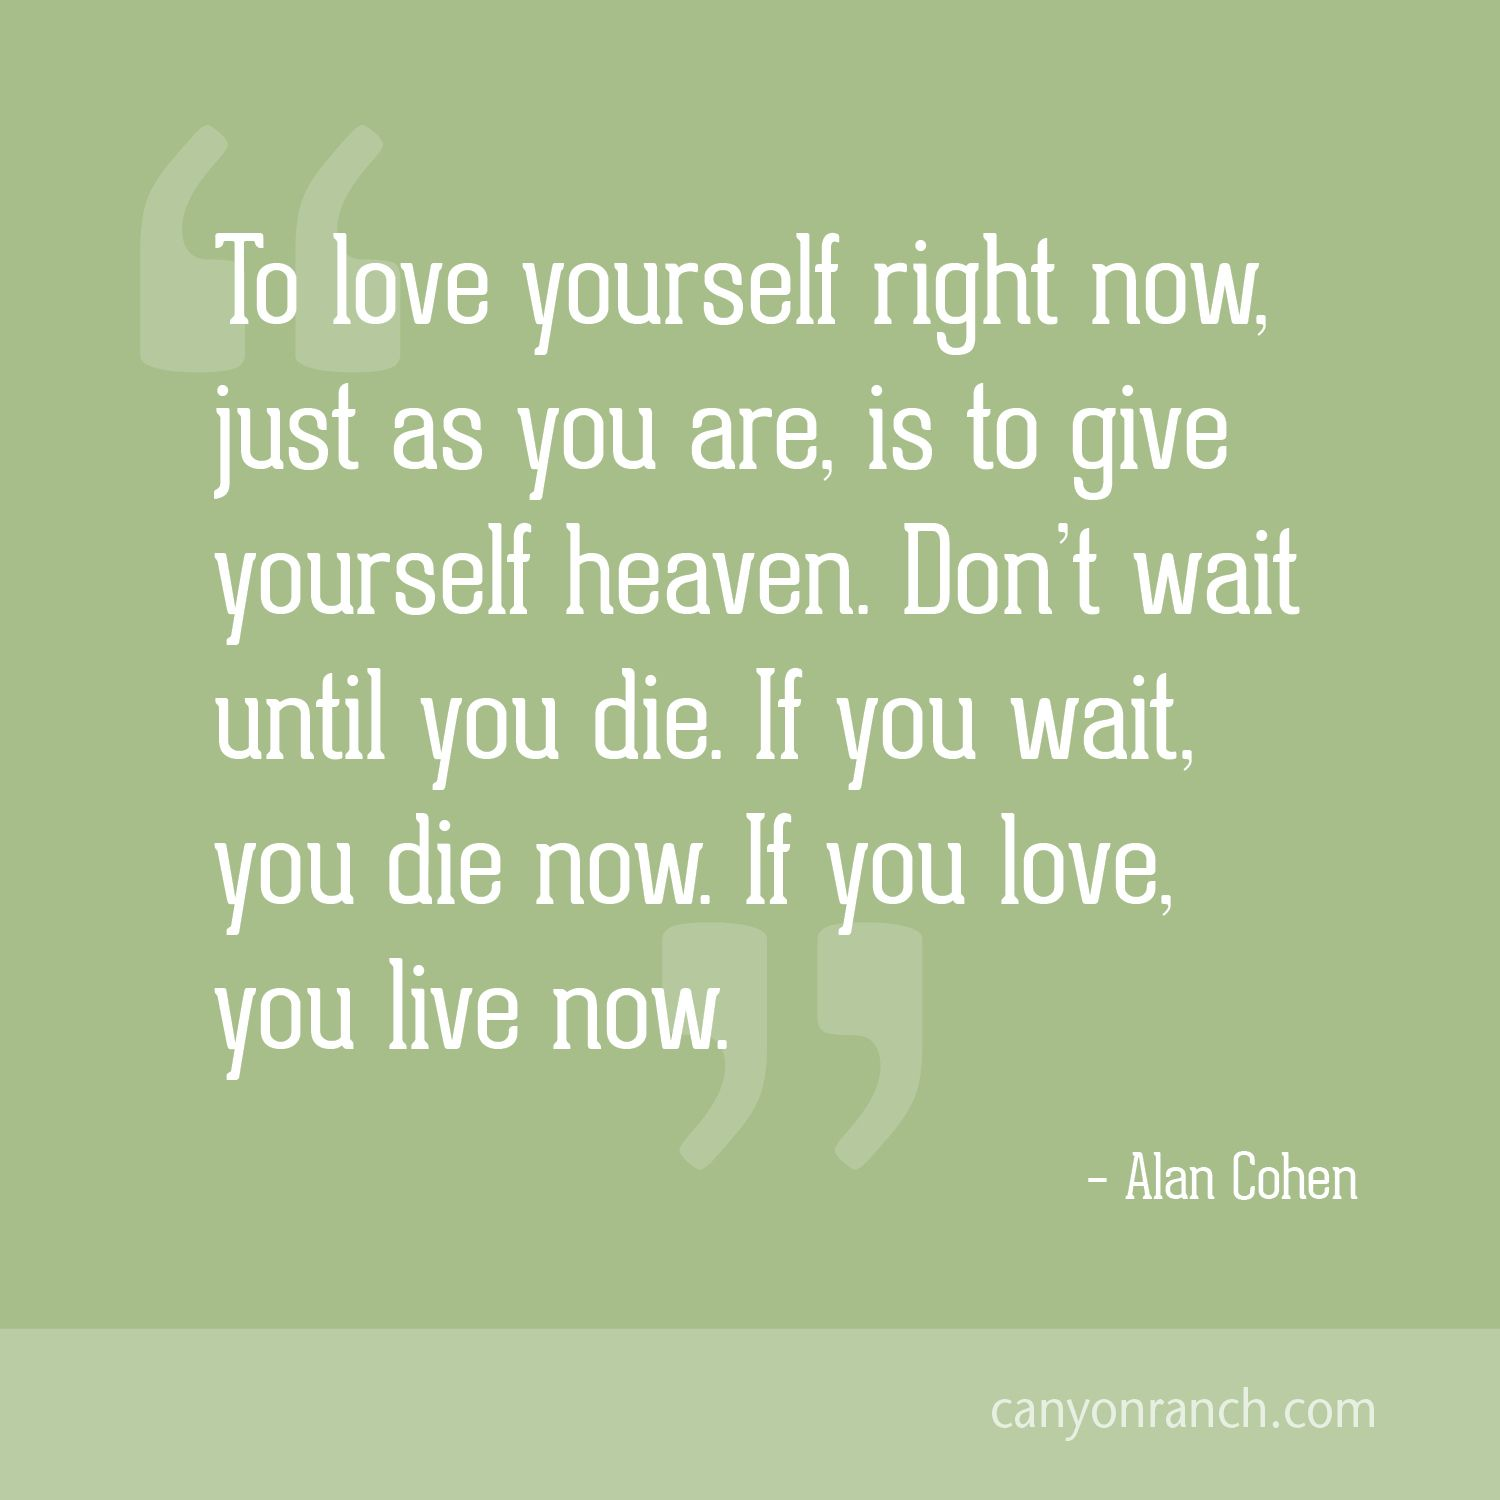 To Love Yourself Right Now Just As You Are Is To Give Yourself